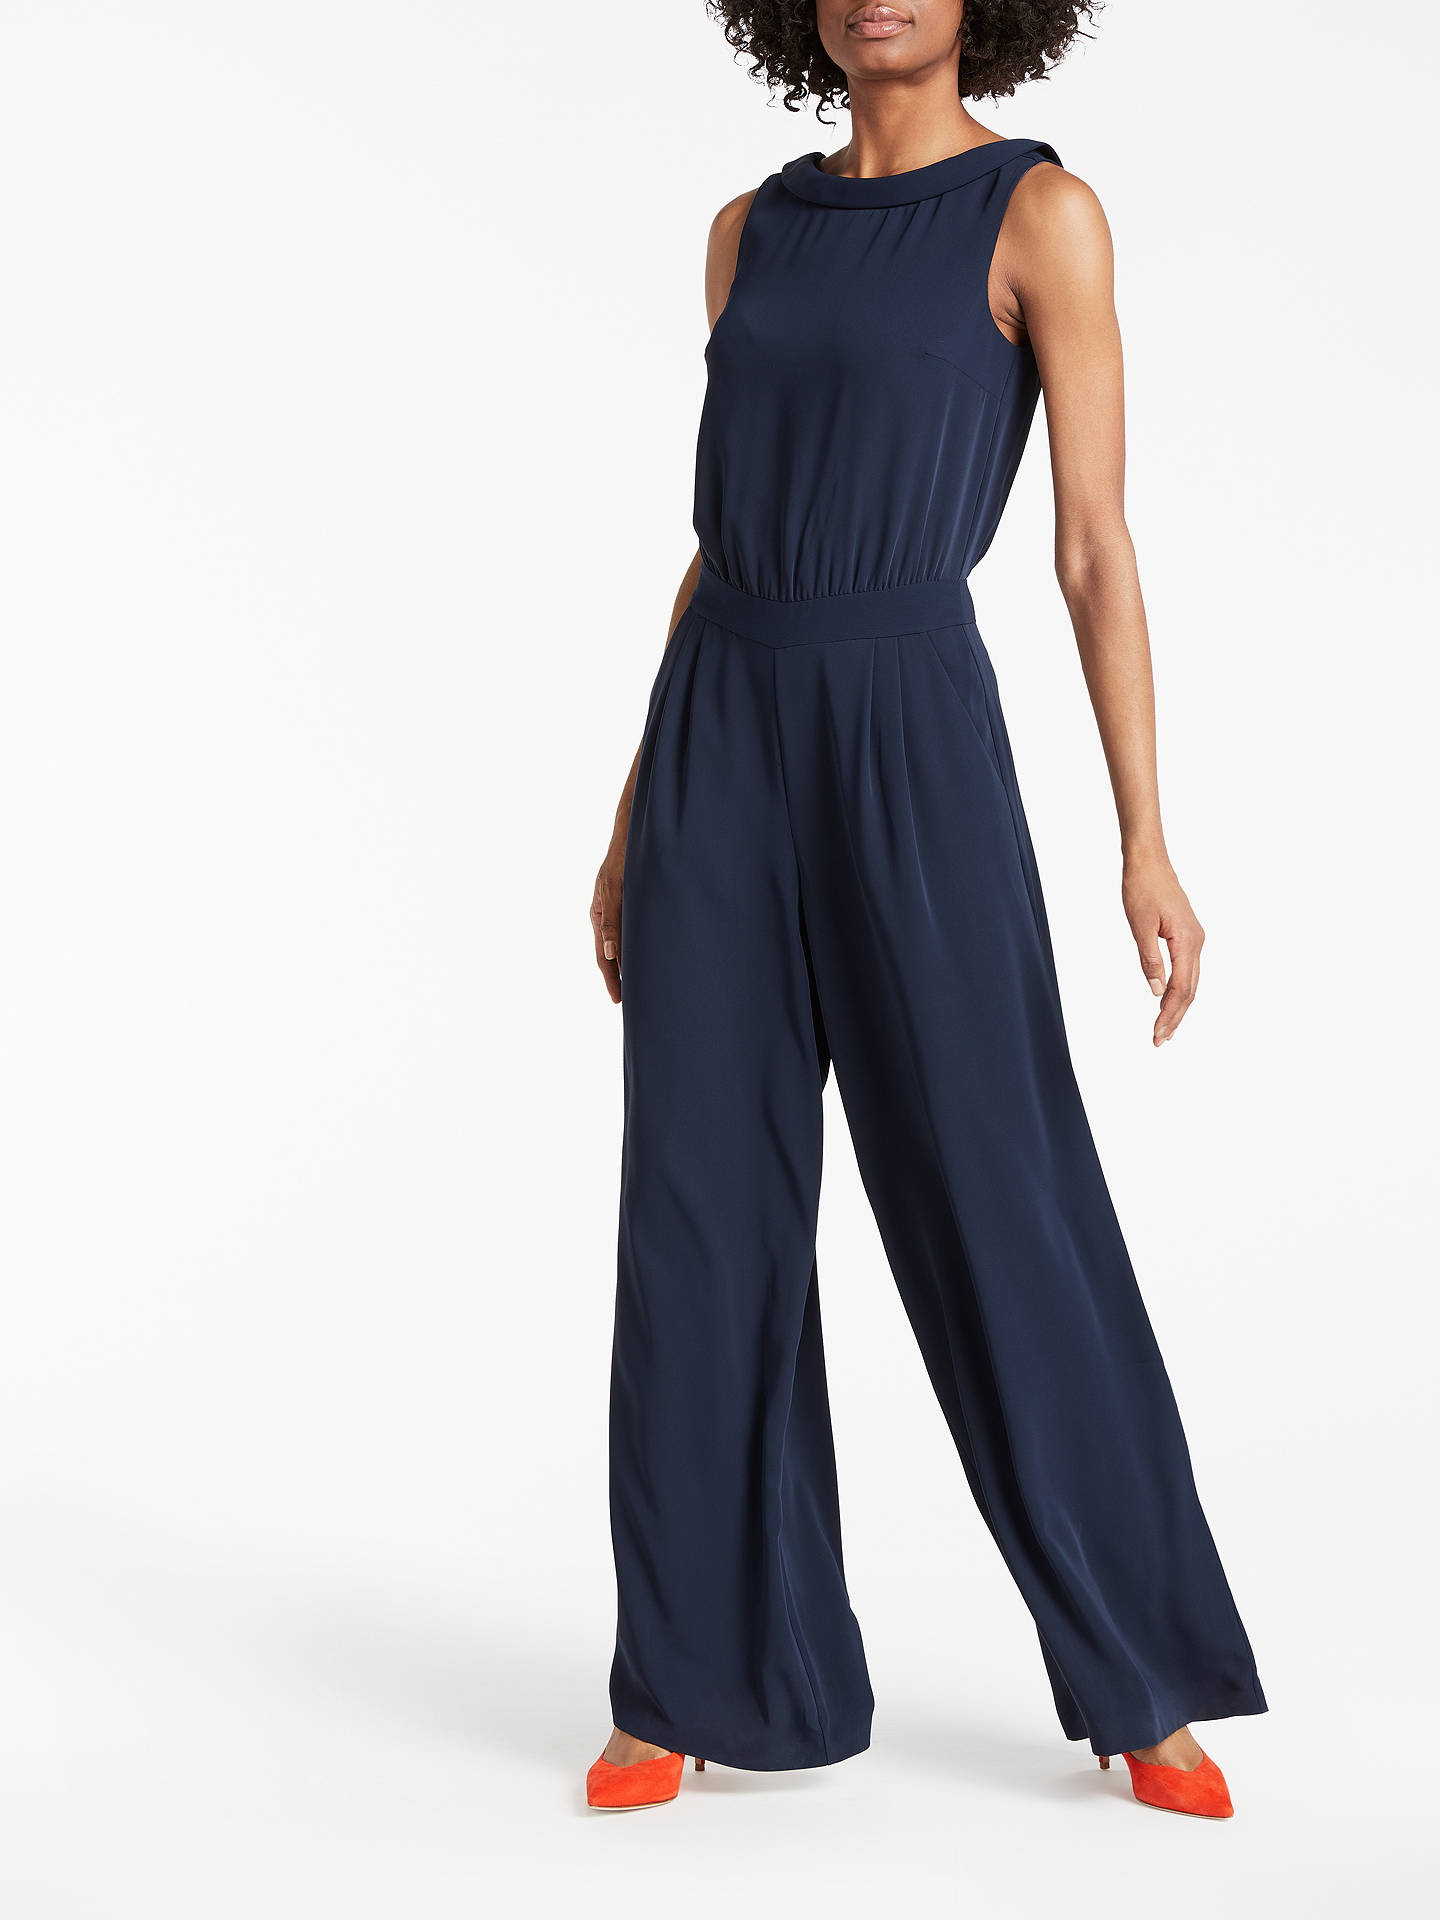 Boden Clarissa Jumpsuit Navy At John Lewis Partners